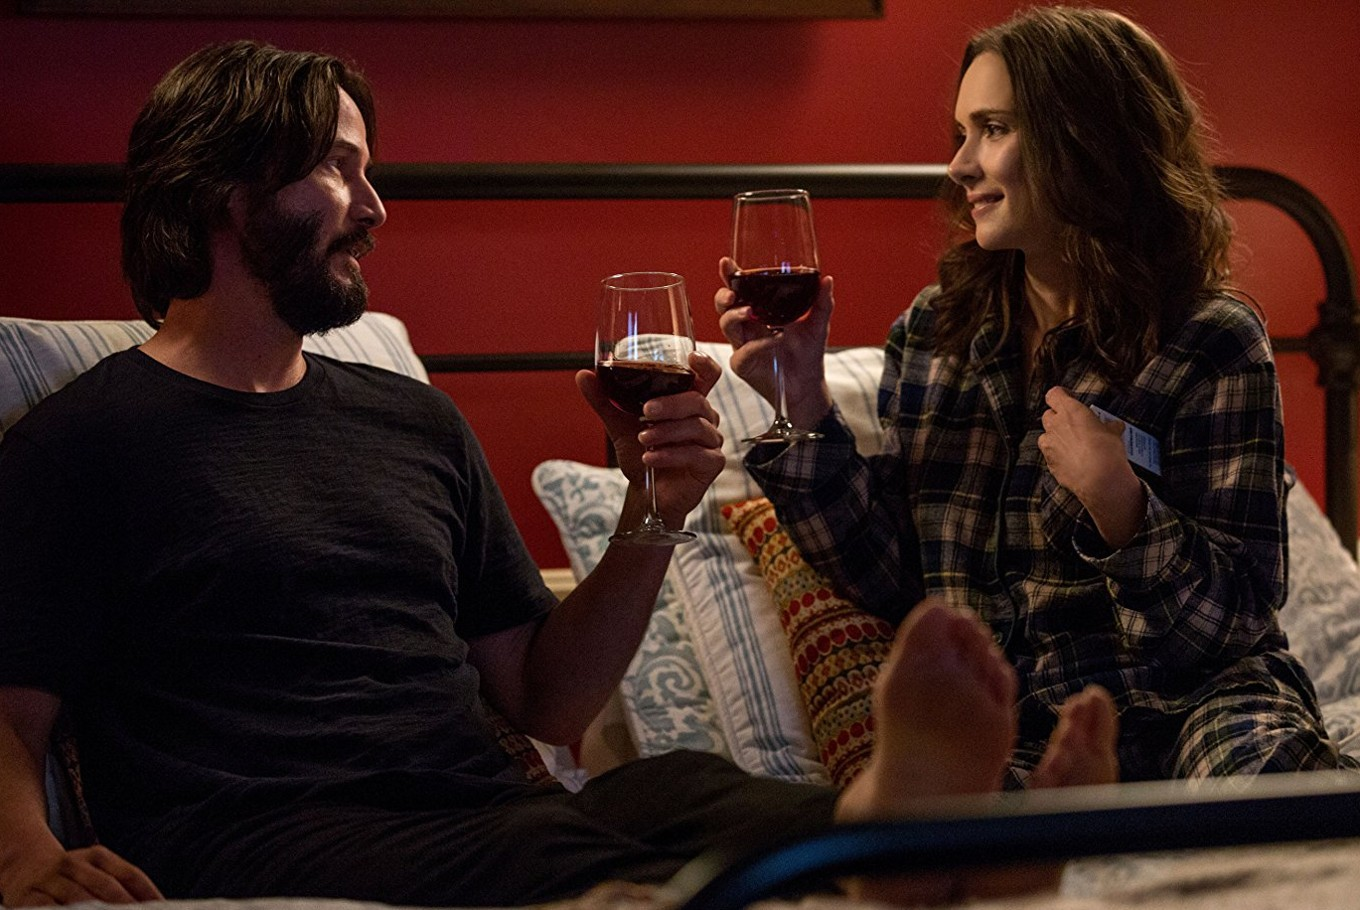 Keanu Reeves, Winona Ryder reunite in 'Destination Wedding'